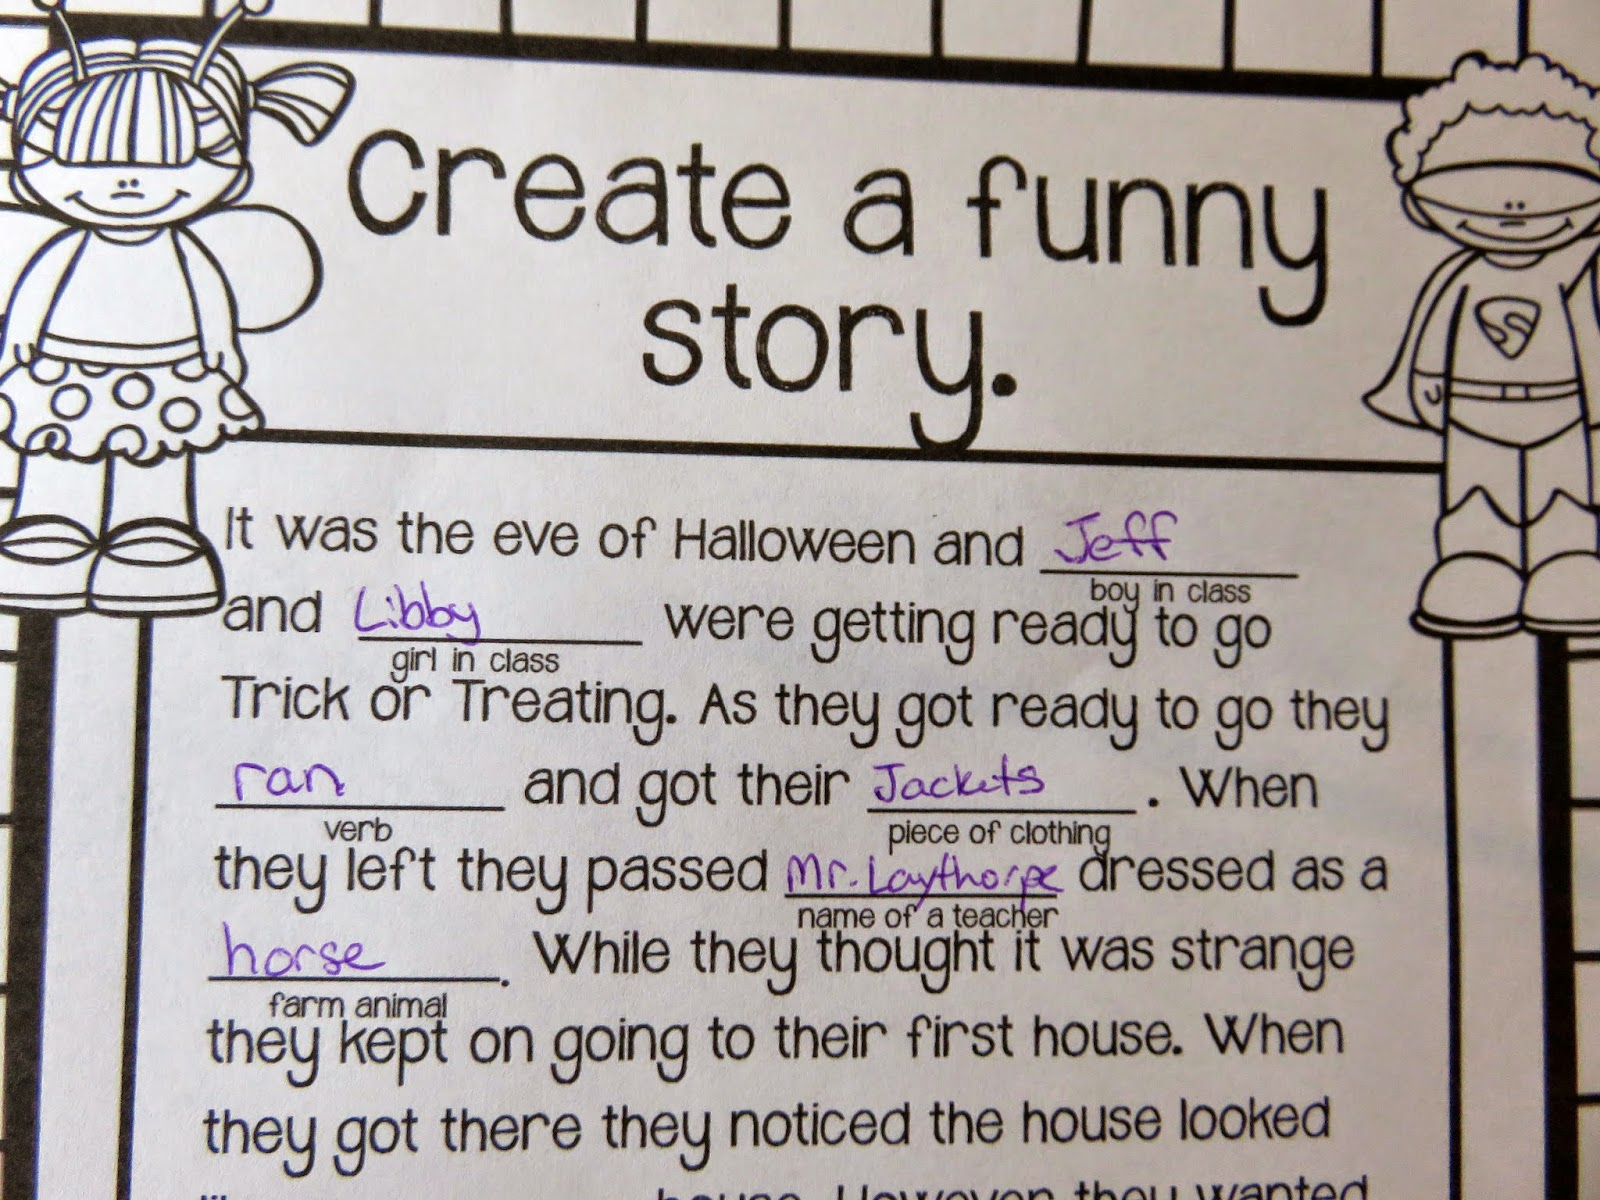 rclassroomsrus  get your reluctant writers off to a great start by creating a fun story about halloween while also incorporating you and some of their classmates as a